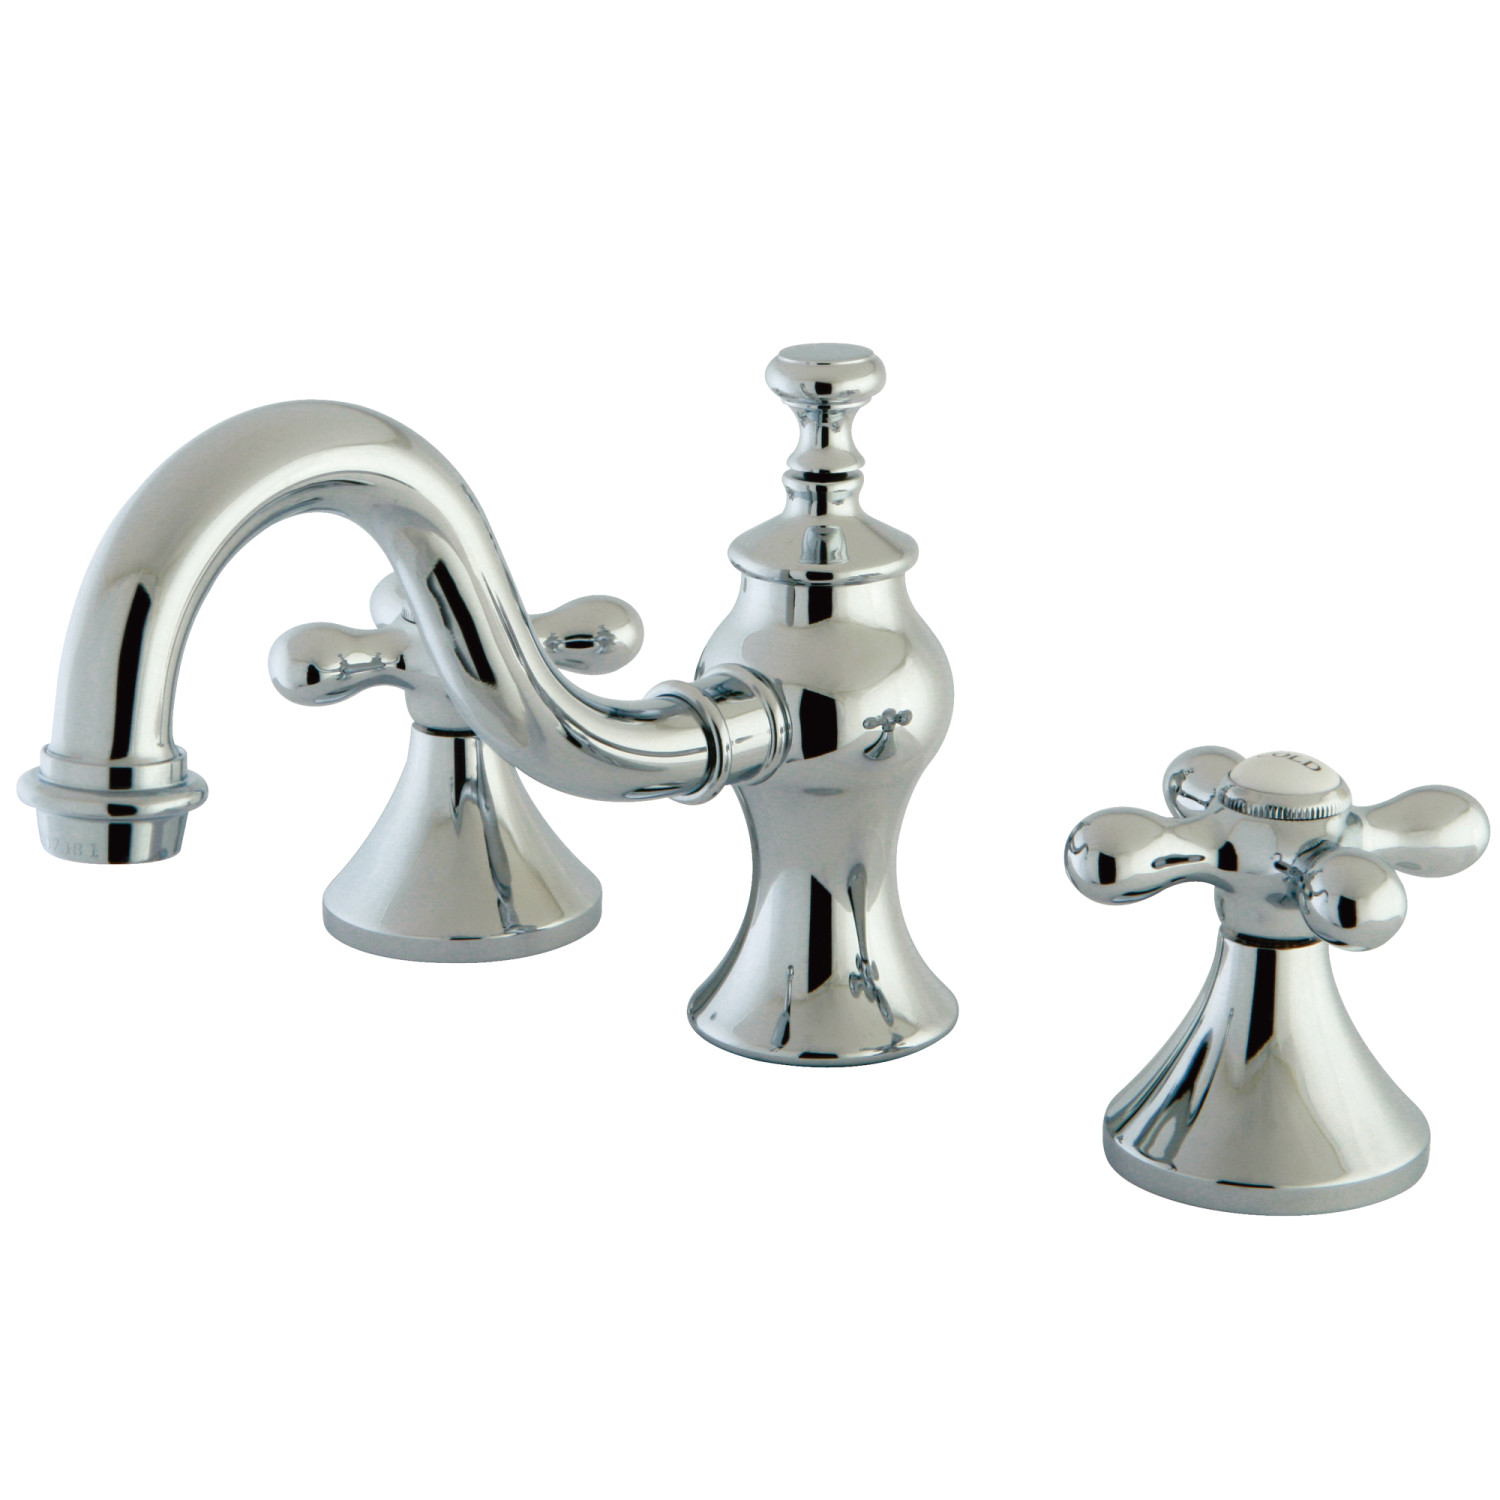 Traditional Two-Handle 3-Hole Deck Mounted Widespread Bathroom Faucet Brass Pop-Up in Polished Chrome